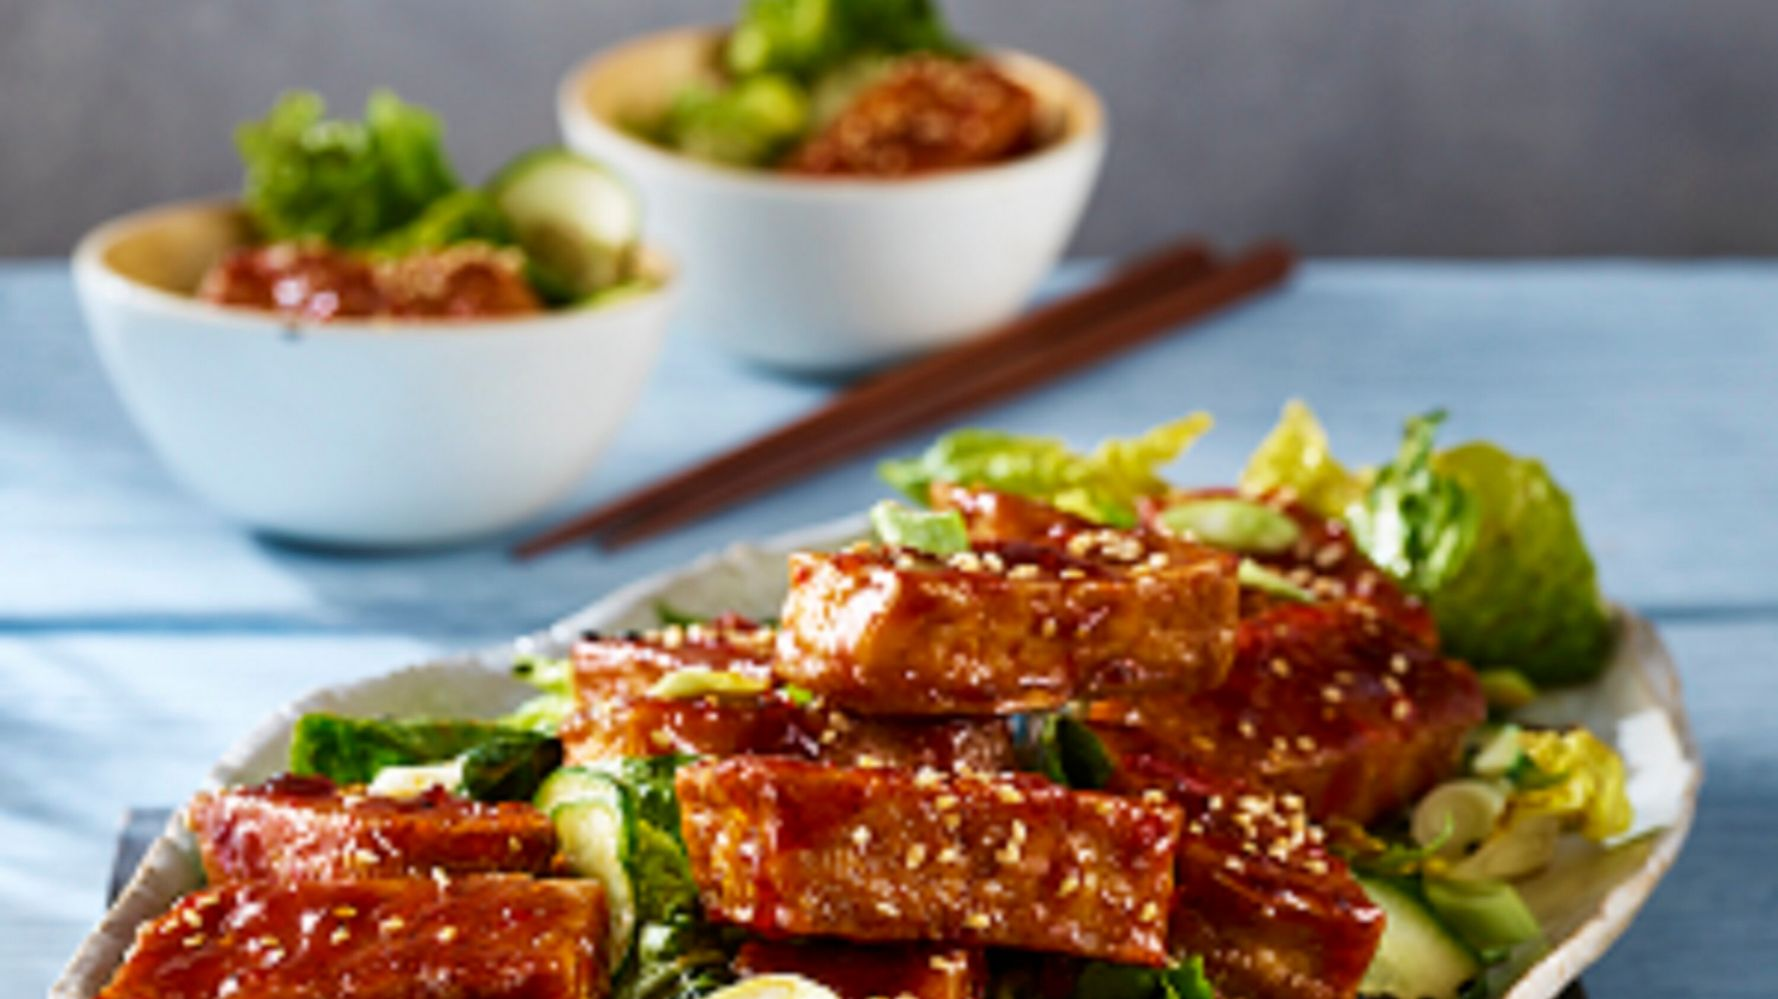 This Crispy Tofu With Spicy Sichuan Glaze Salad Recipe Will Win Over Your Kids